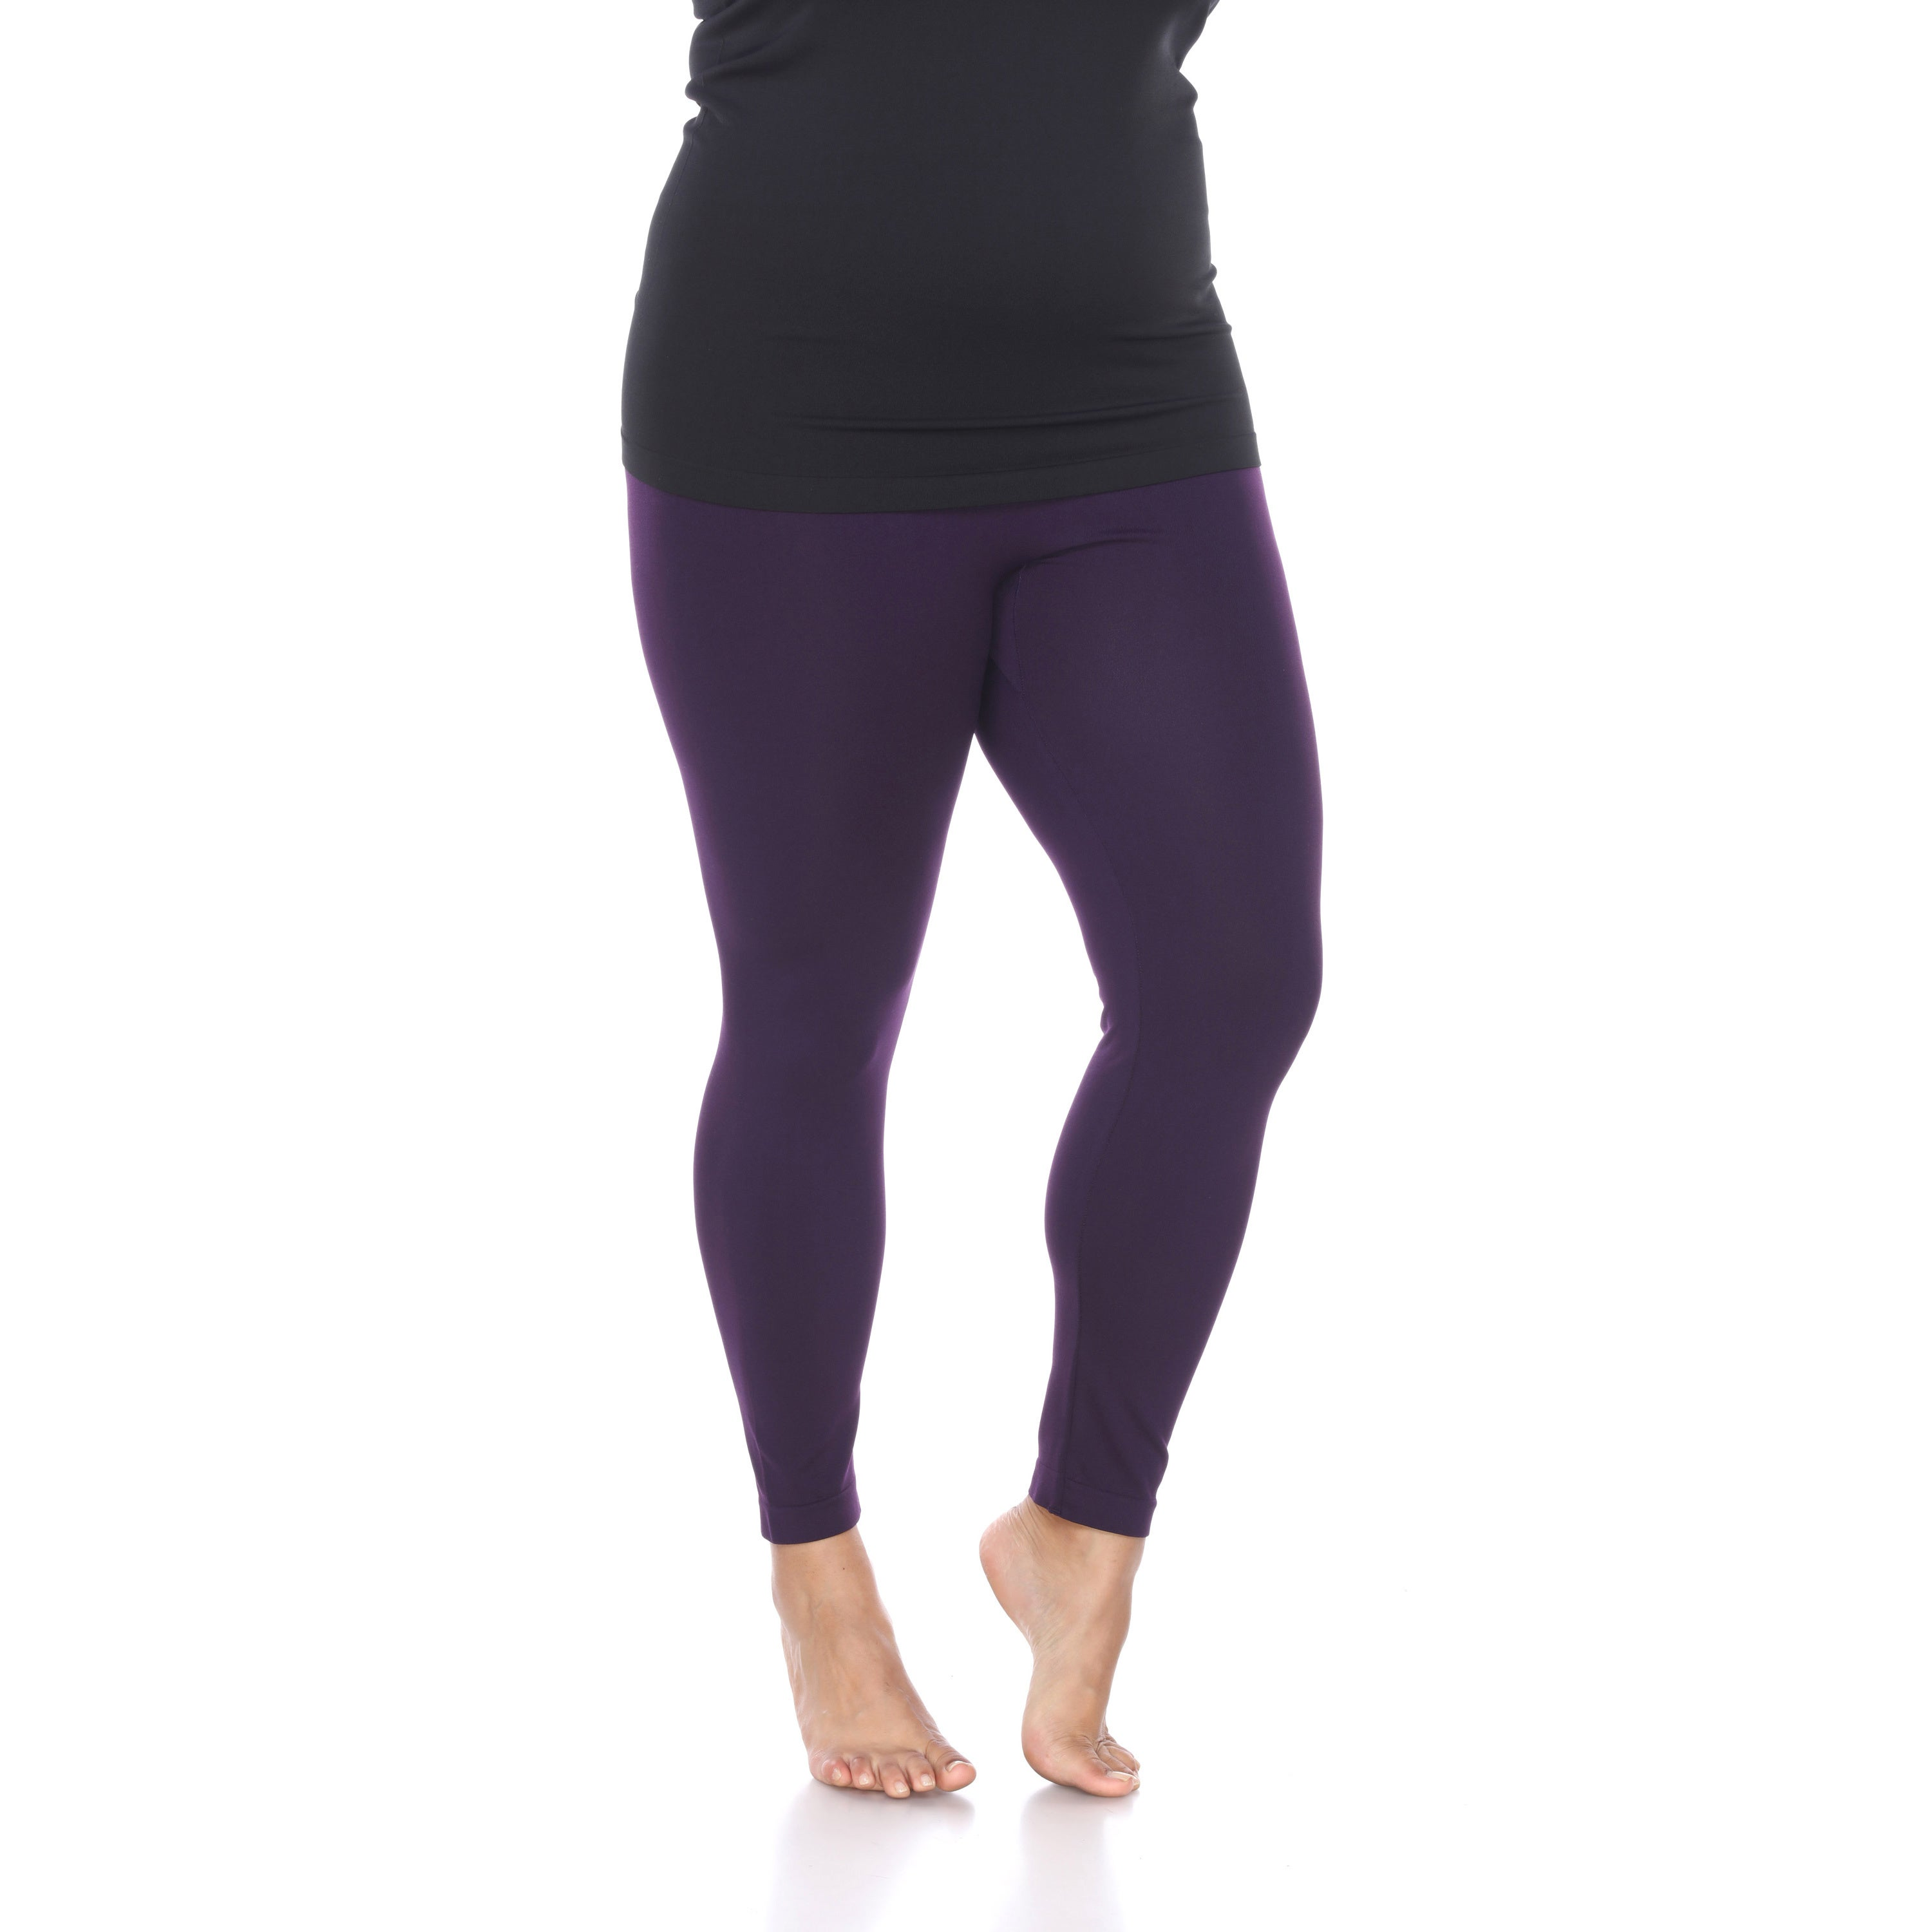 c89f97987ae32f Shop White Mark Women's Plus-size Polyester and Spandex Leggings (3-pack) -  On Sale - Free Shipping On Orders Over $45 - Overstock - 11959276